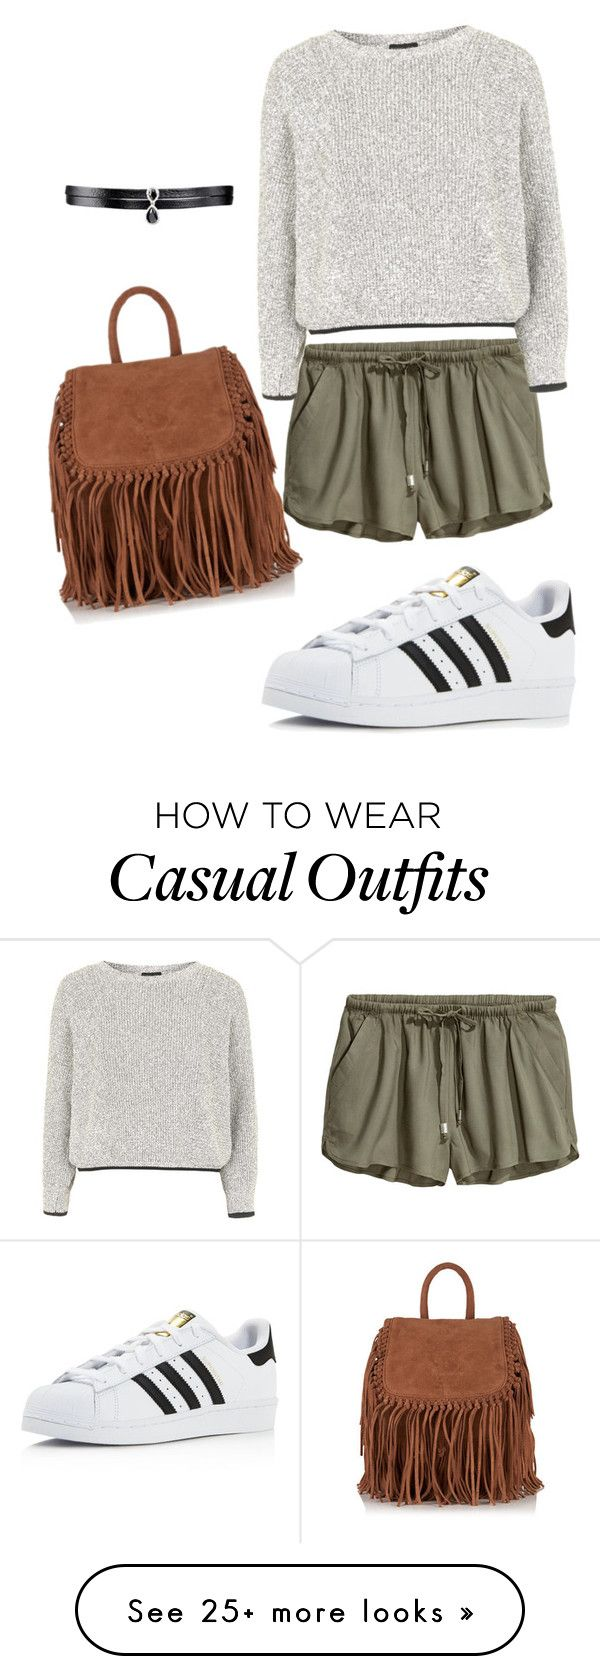 """Casual outfit for grey lovers💫"" by greyblack on Polyvore featuring Topshop, Superdry, adidas and Fallon"